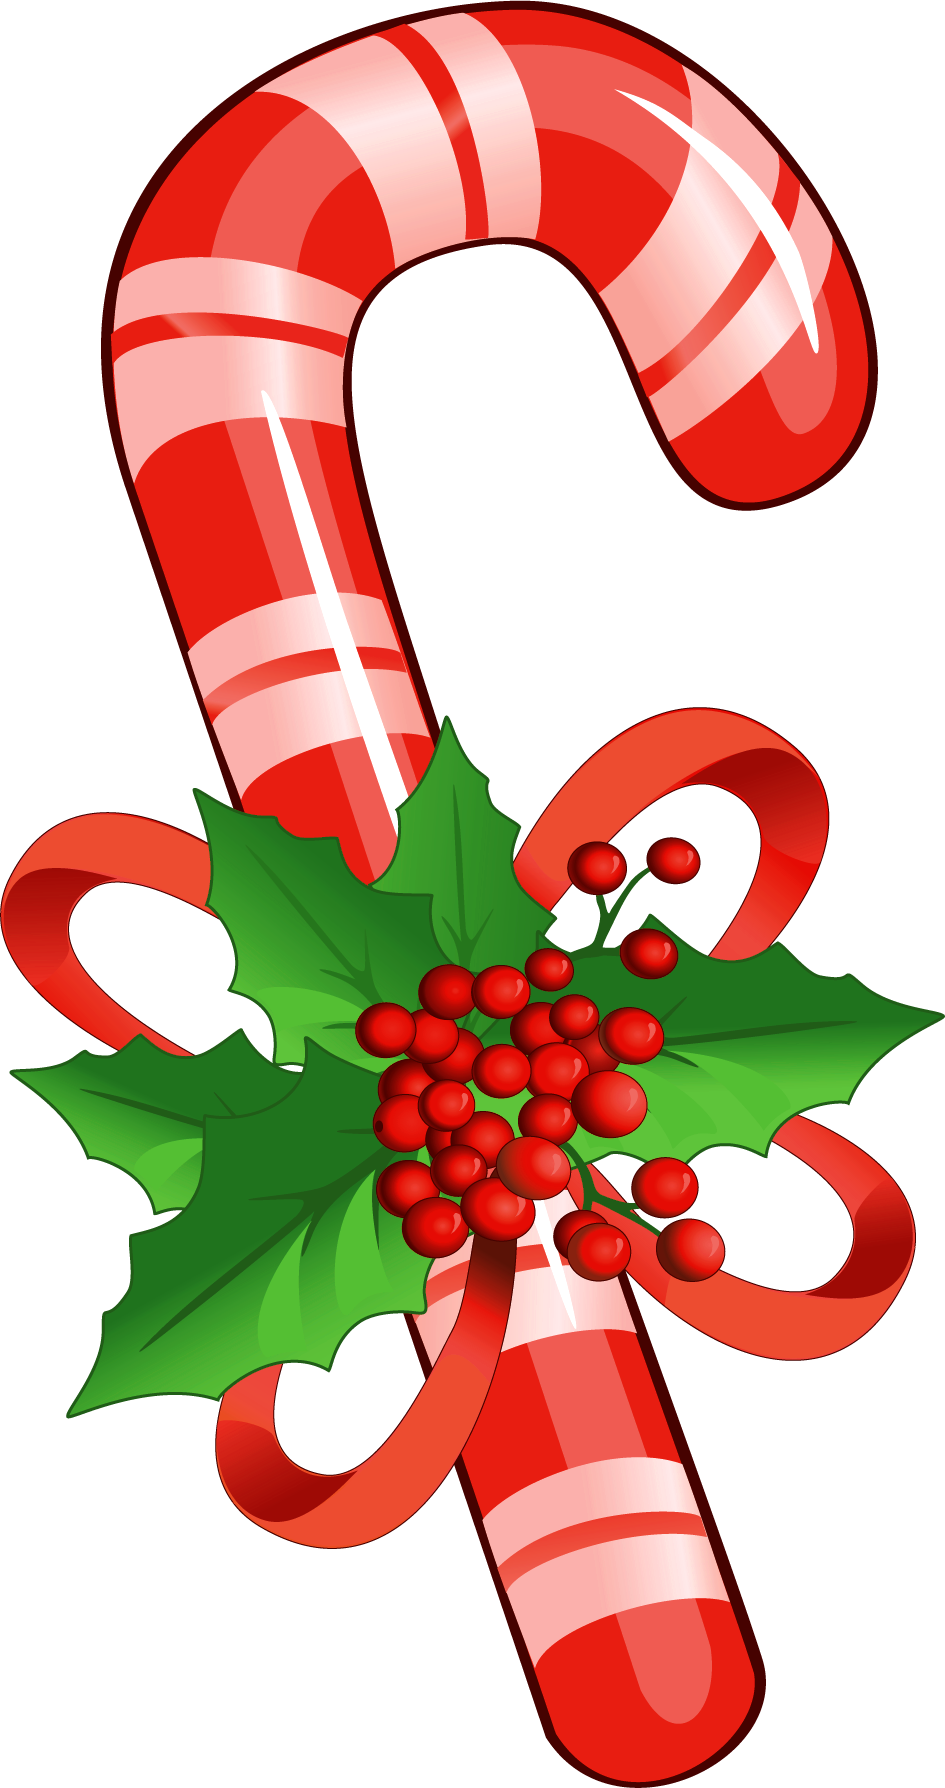 Candy clipart transparent background png free banner stock Christmas candy PNG - PNG image with transparent background banner stock